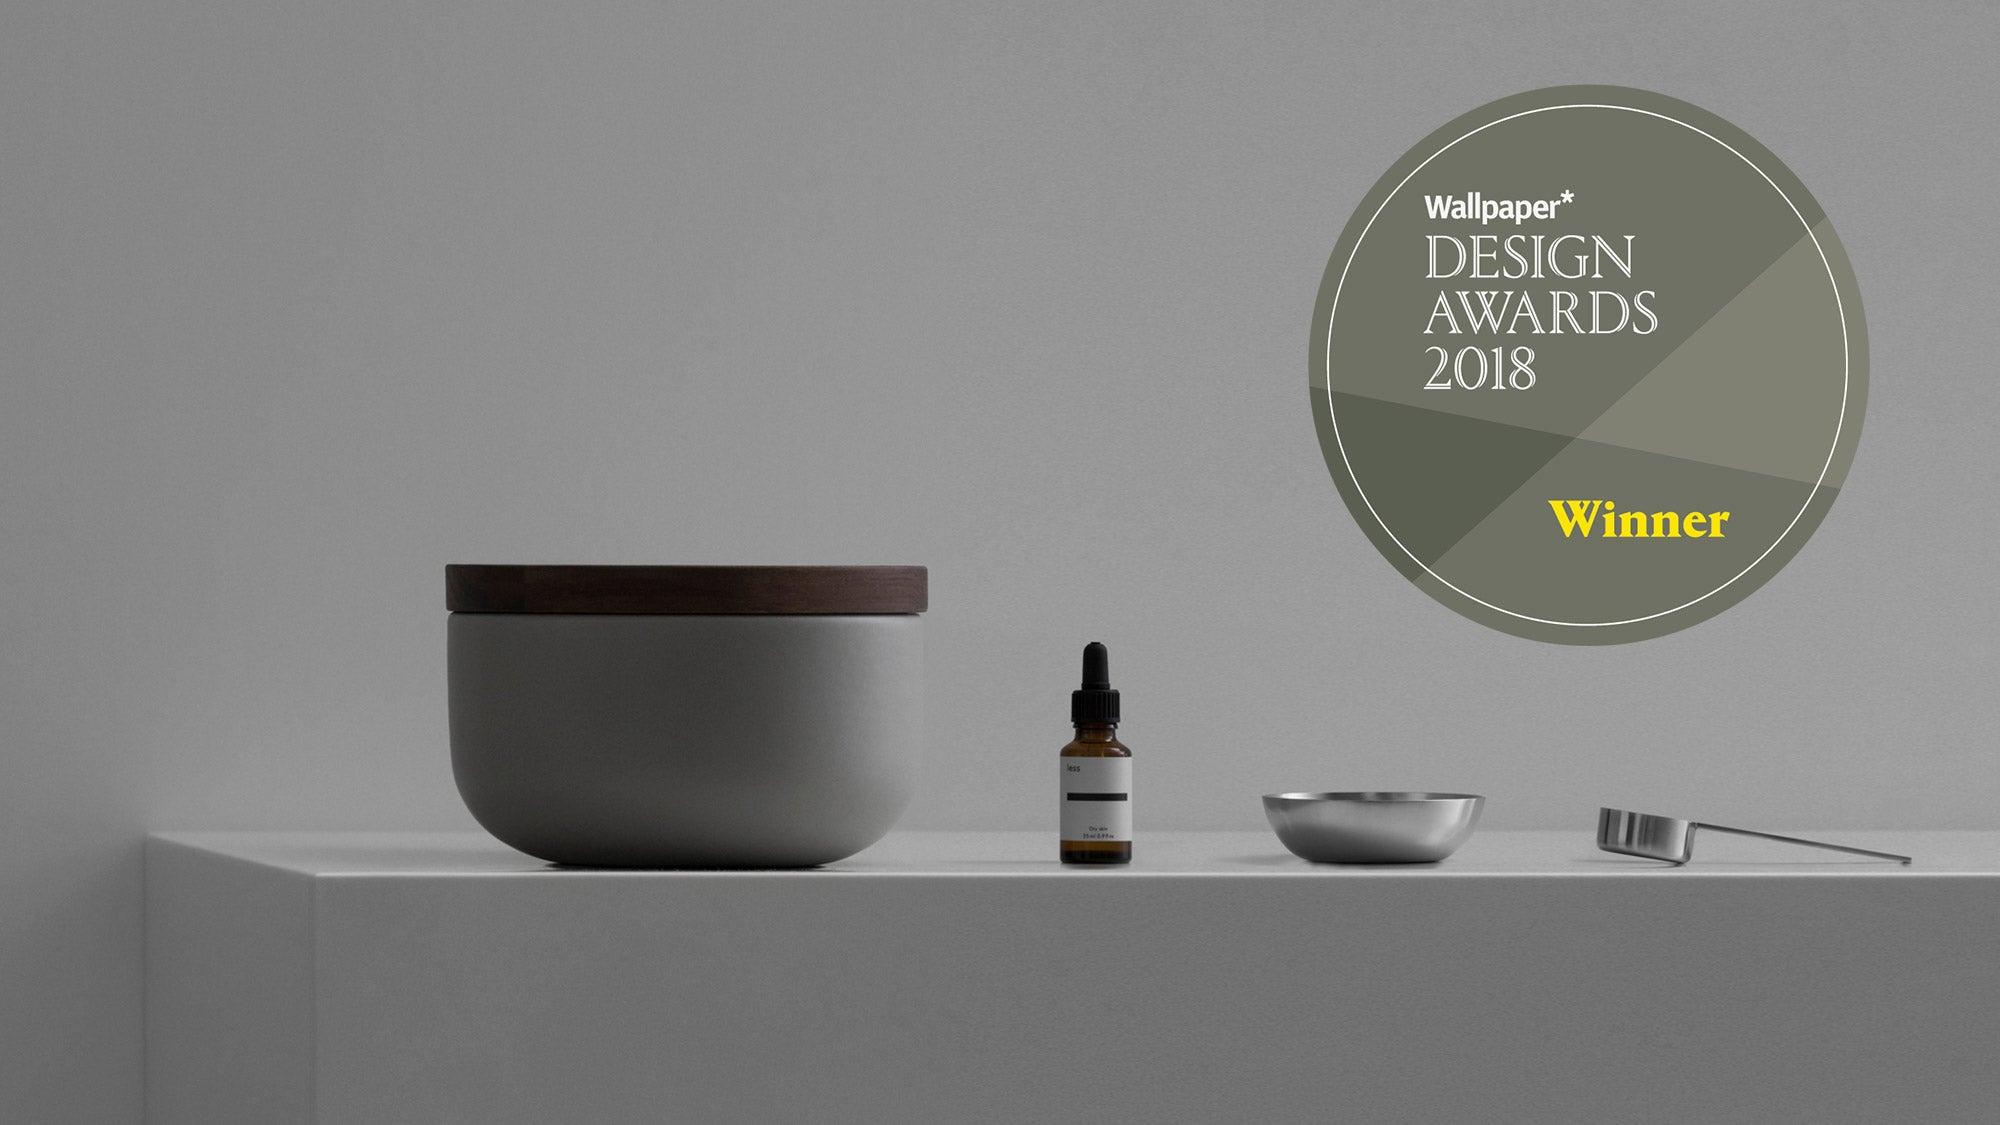 Less Wallpaper Design Award Grooming Product